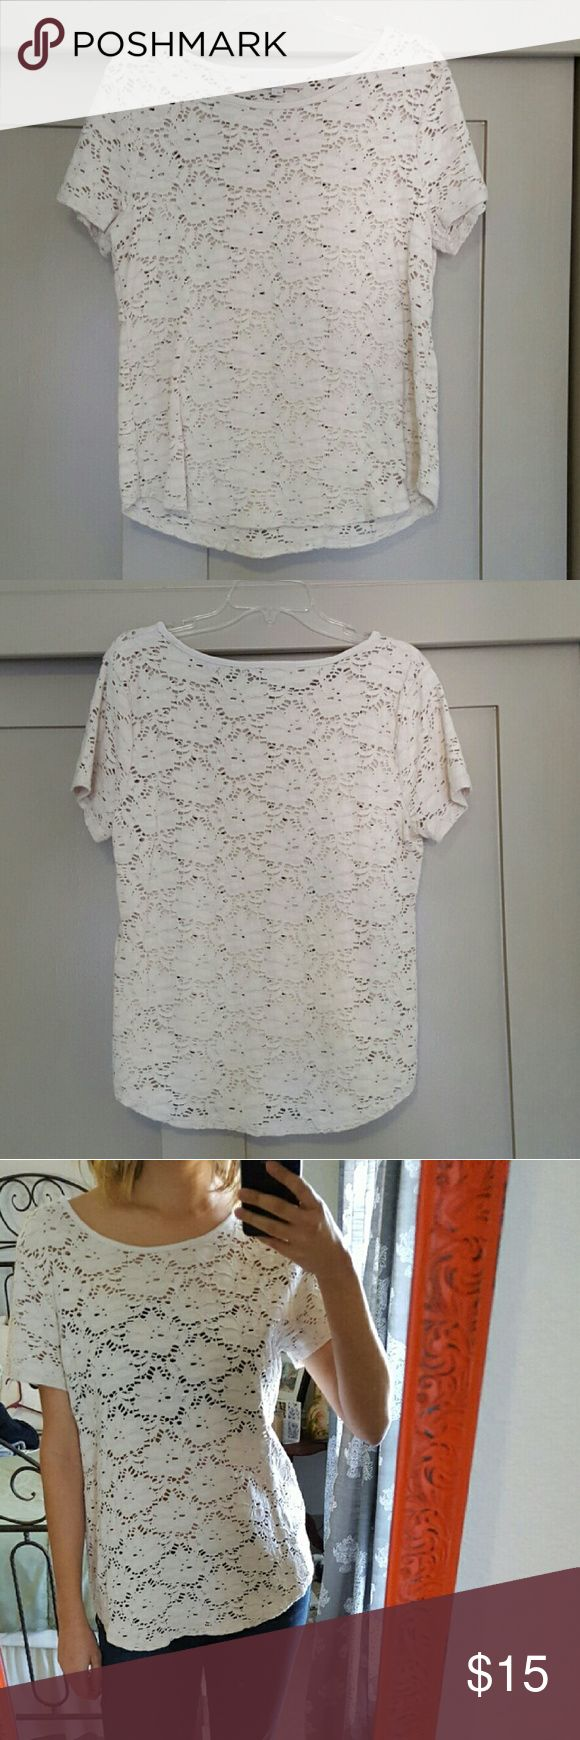 Ann Taylor Loft white lace top Great off-white layering top! Shown here with both a bandeau underneath and a nude undershirt cami, and both versions look classic. Very comfortable shirt and has the versatility to be dressed up or down. LOFT Tops